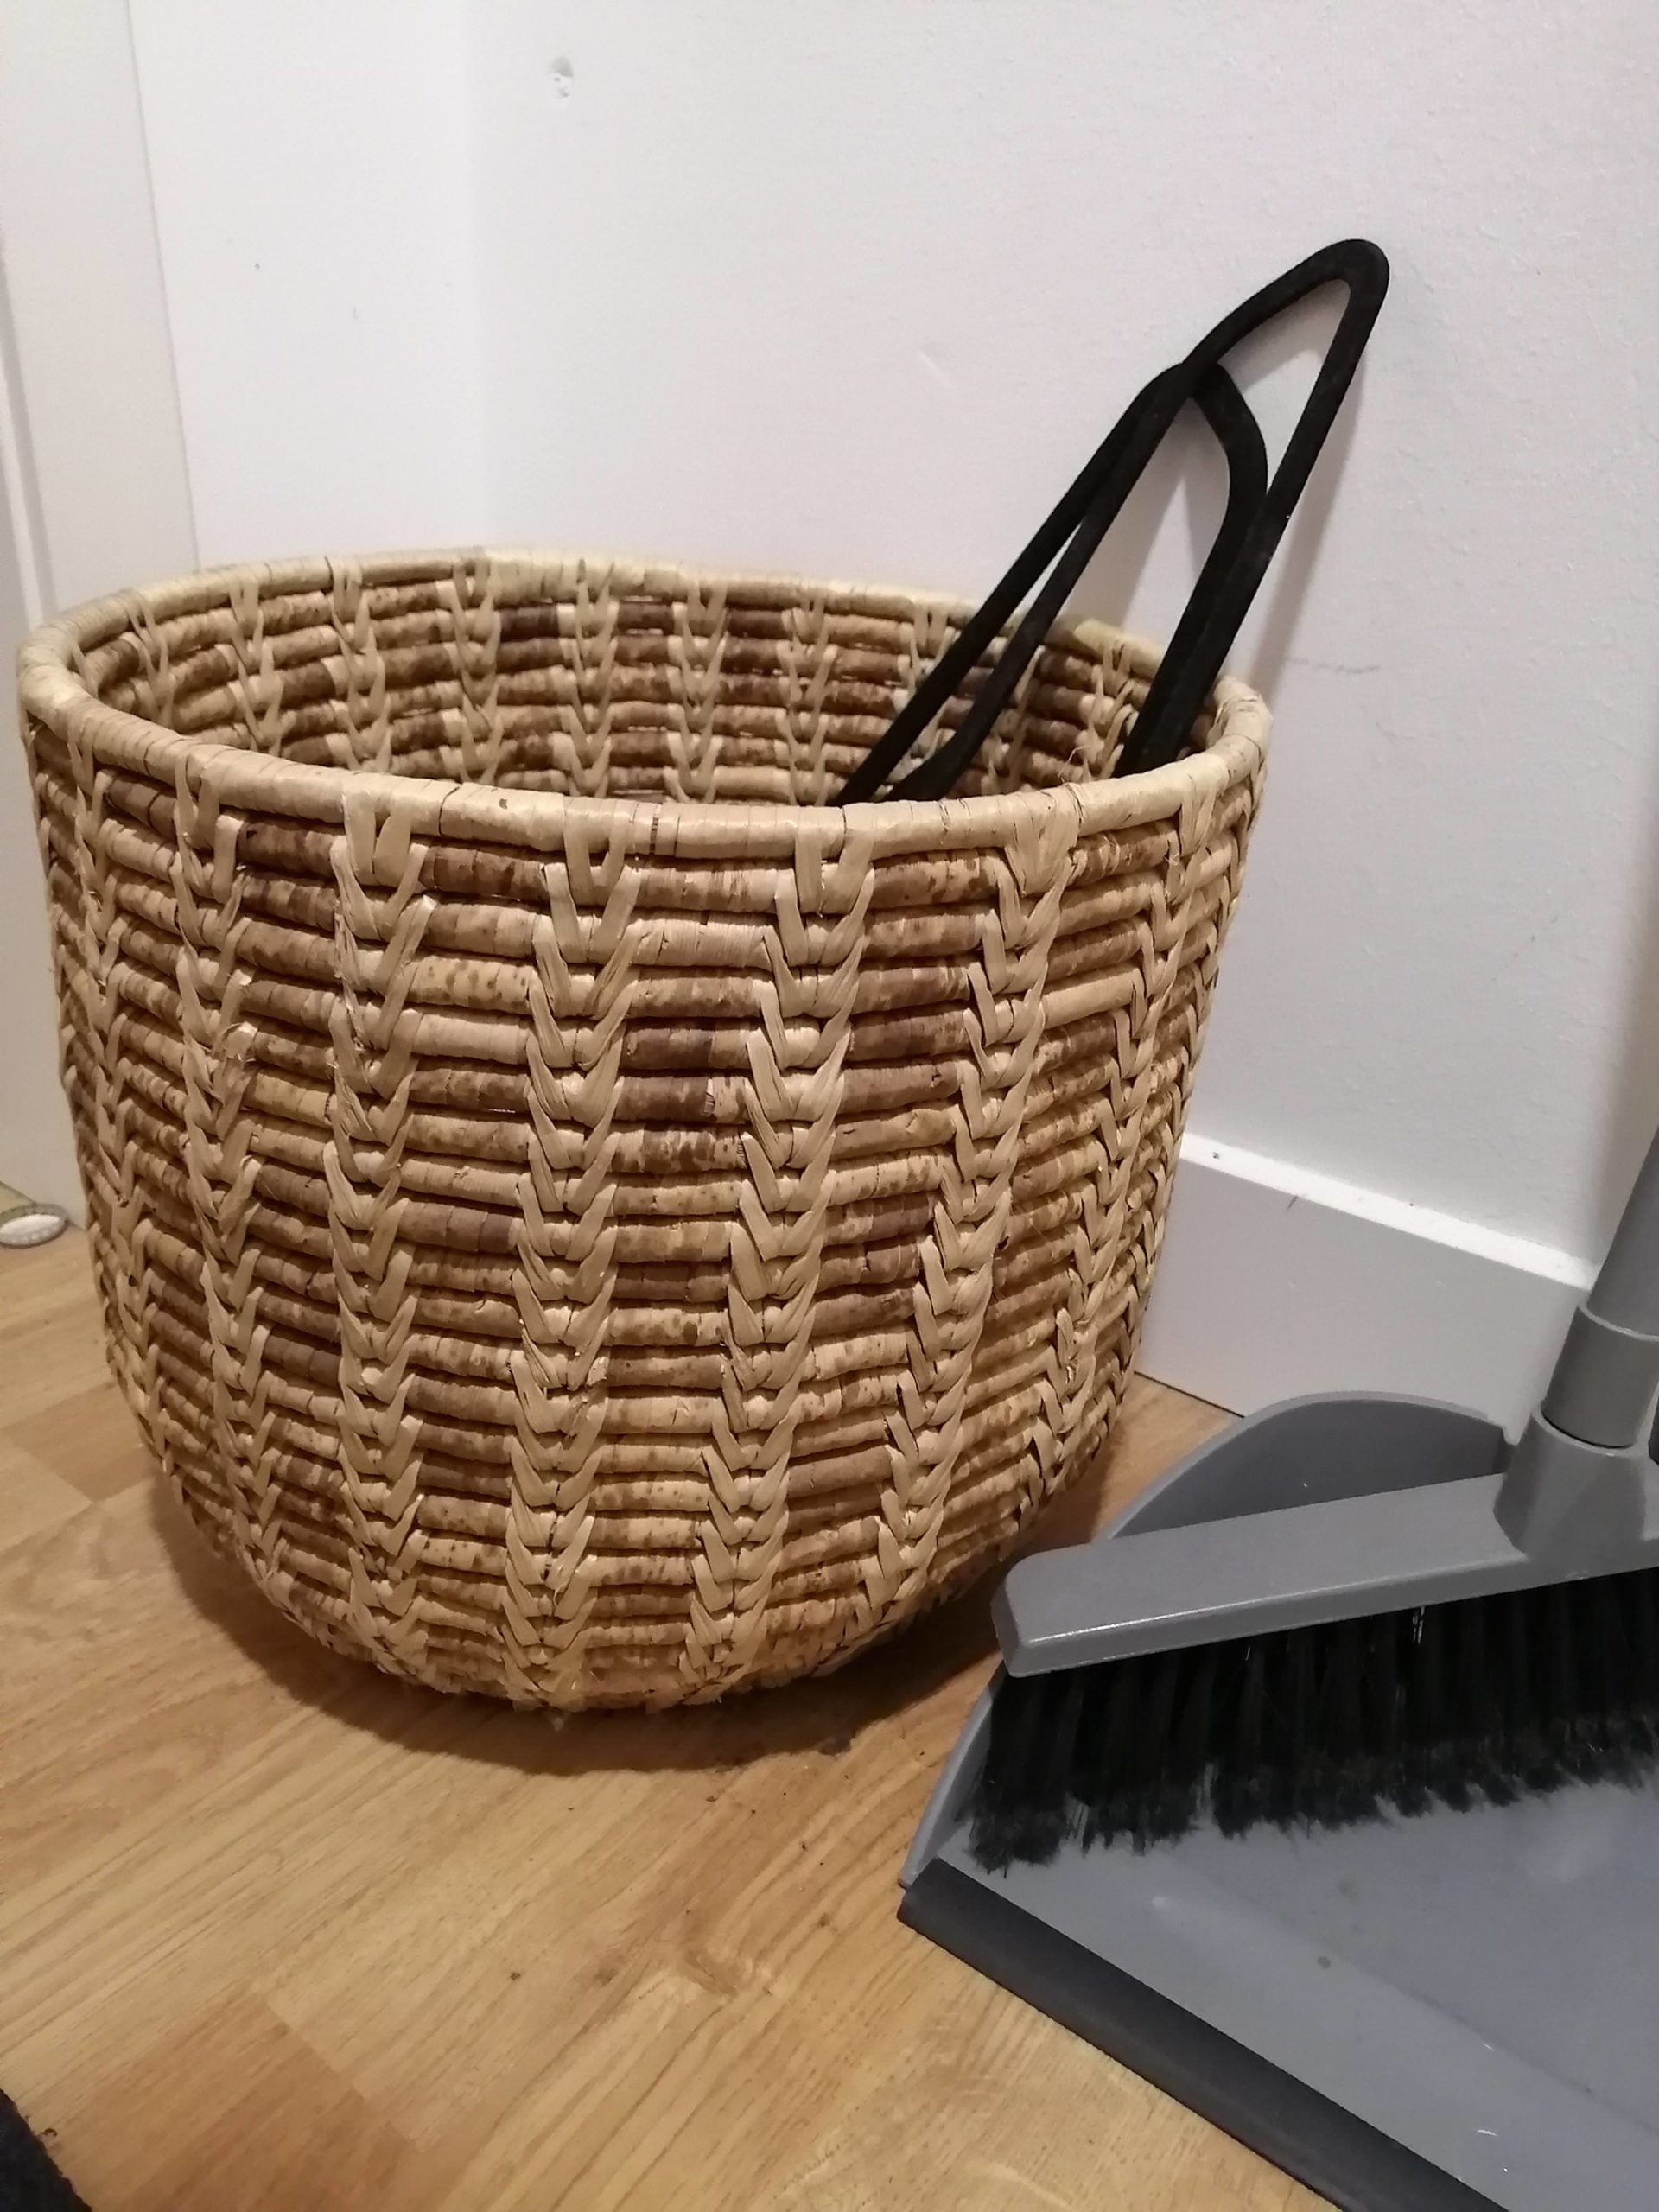 A wicker basket and broom